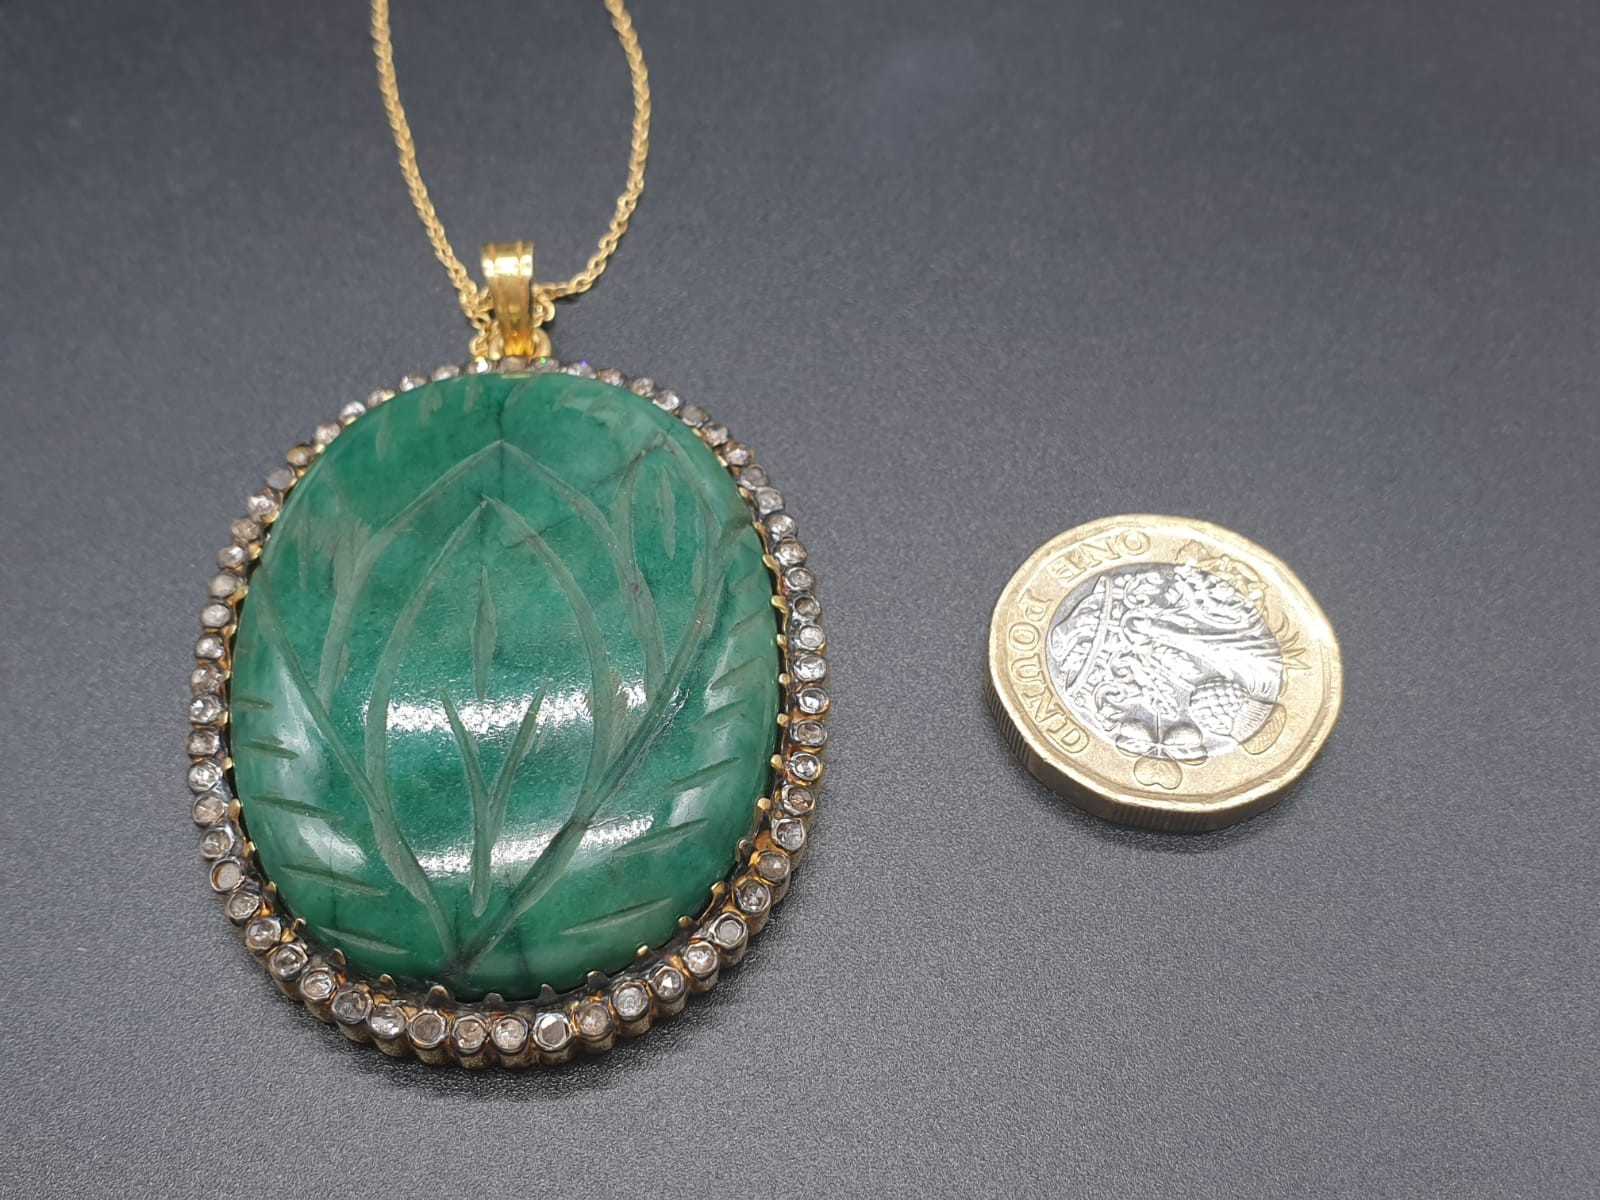 A carved emerald Pendant with a halo of rose cut diamonds in pave setting in sterling silver with - Image 5 of 7